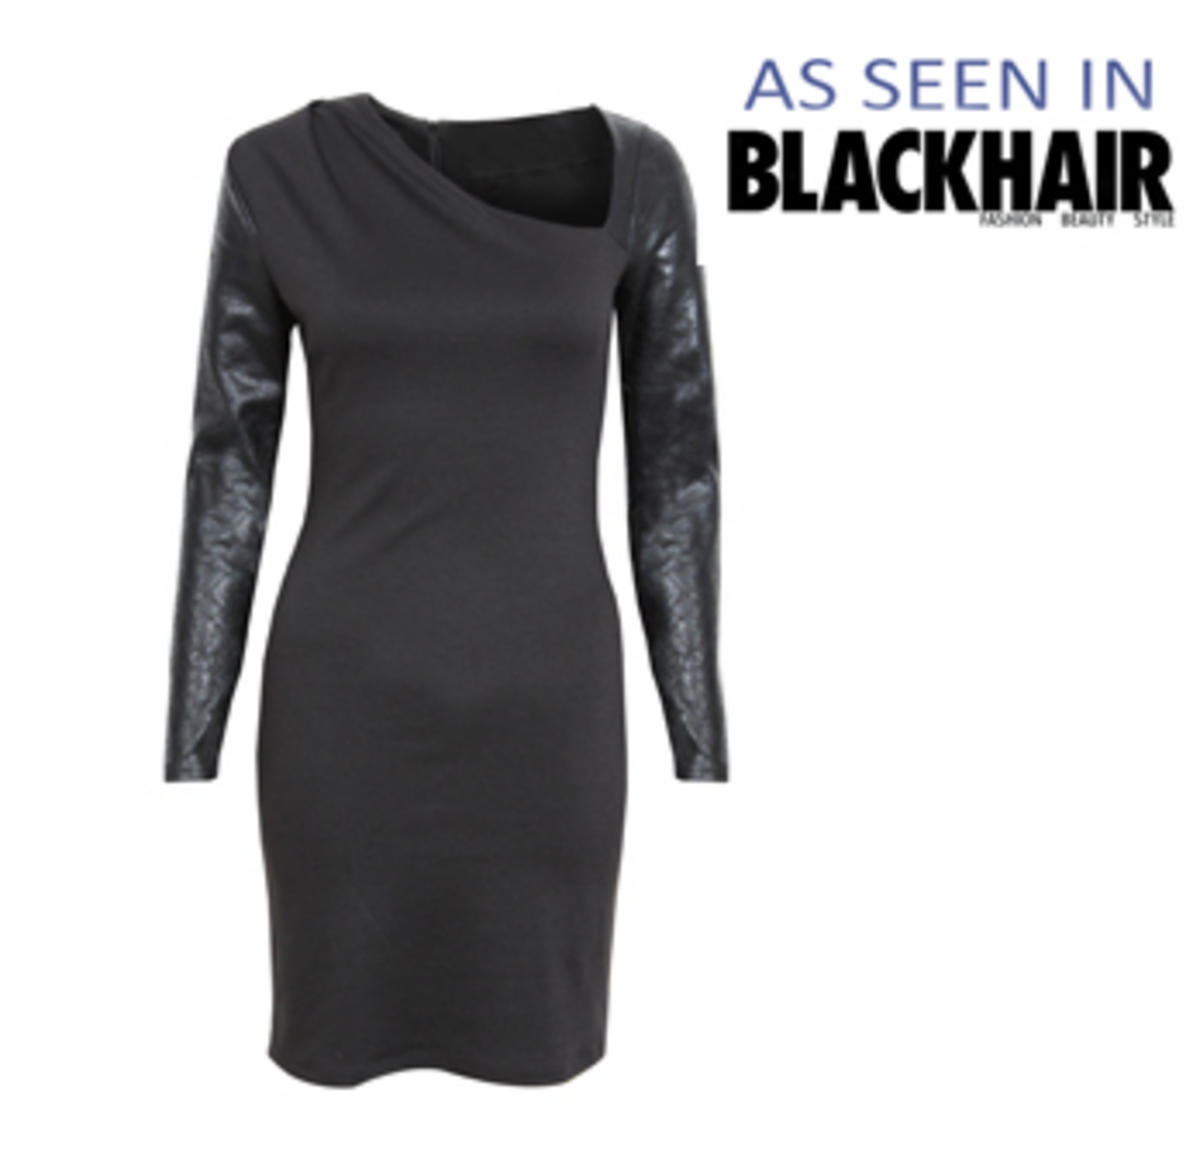 Black Bodycon Dress with Long PU Leather Sleeves Preview